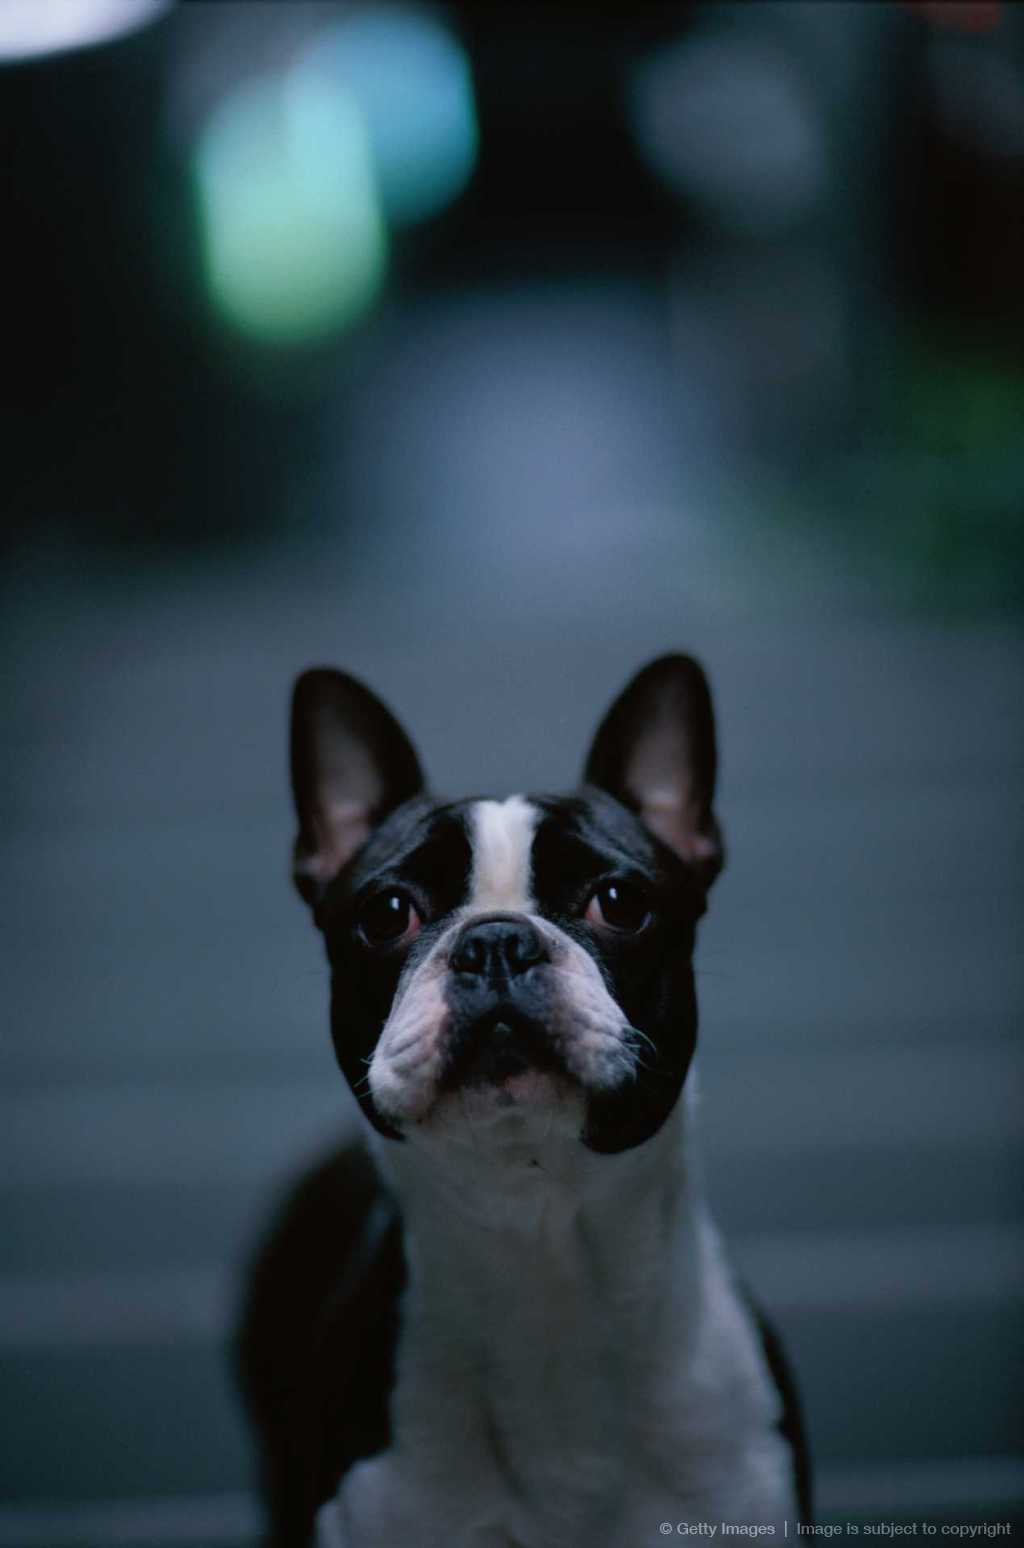 File:Boston Terrier Puppy Zoya.jpg - Wikipedia, the free encyclopedia